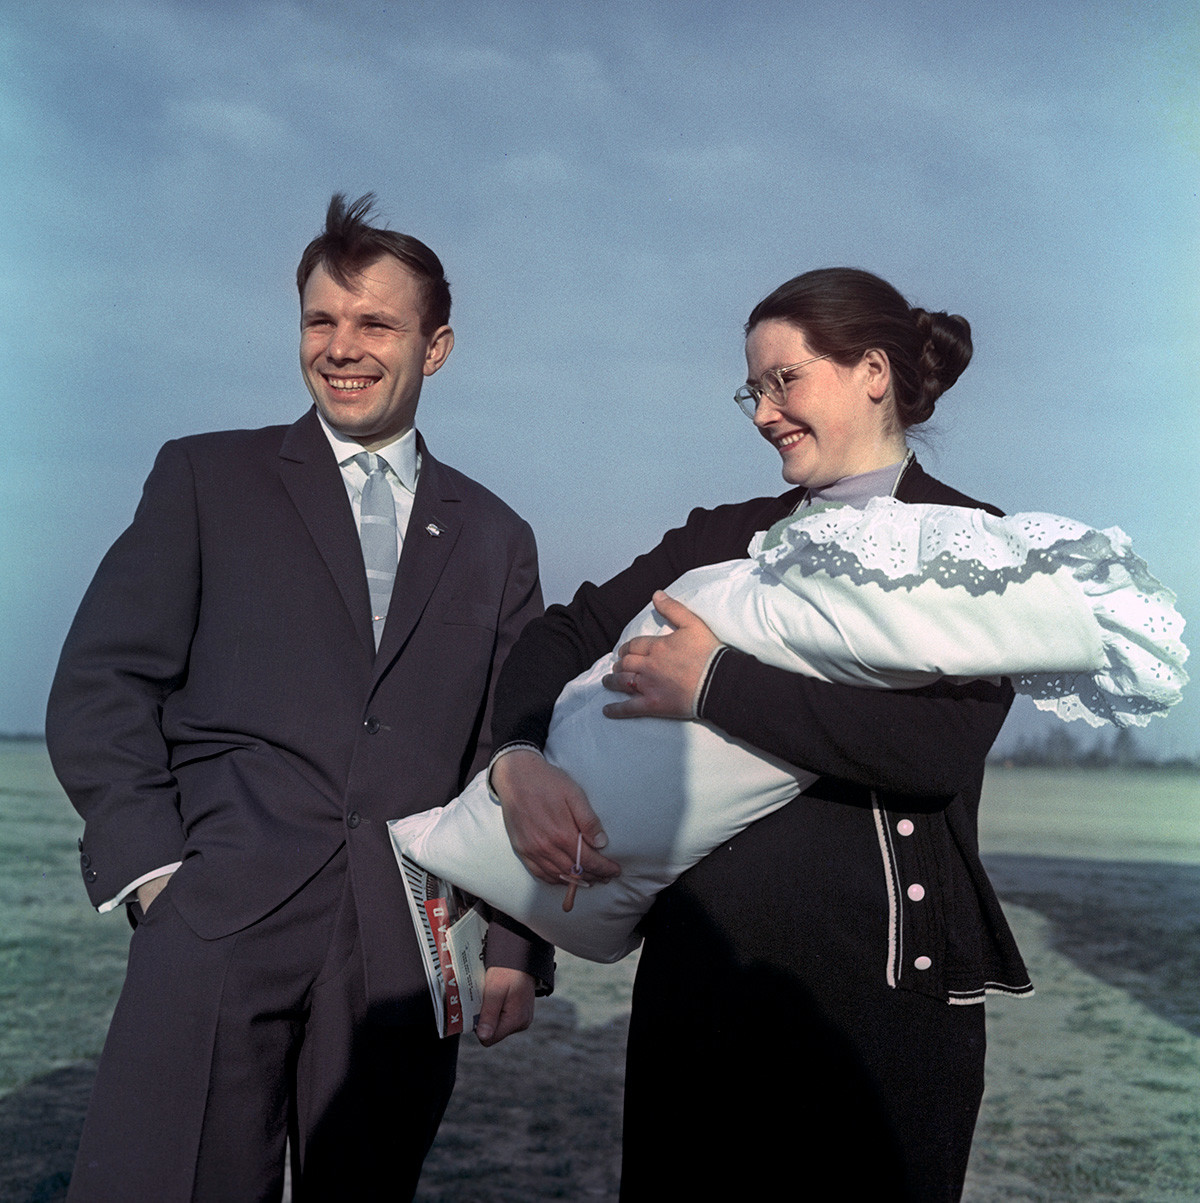 Yuri Gagarin with his wife Valentina and daughter Galina on May 1, 1961. Galina works today as an economist.